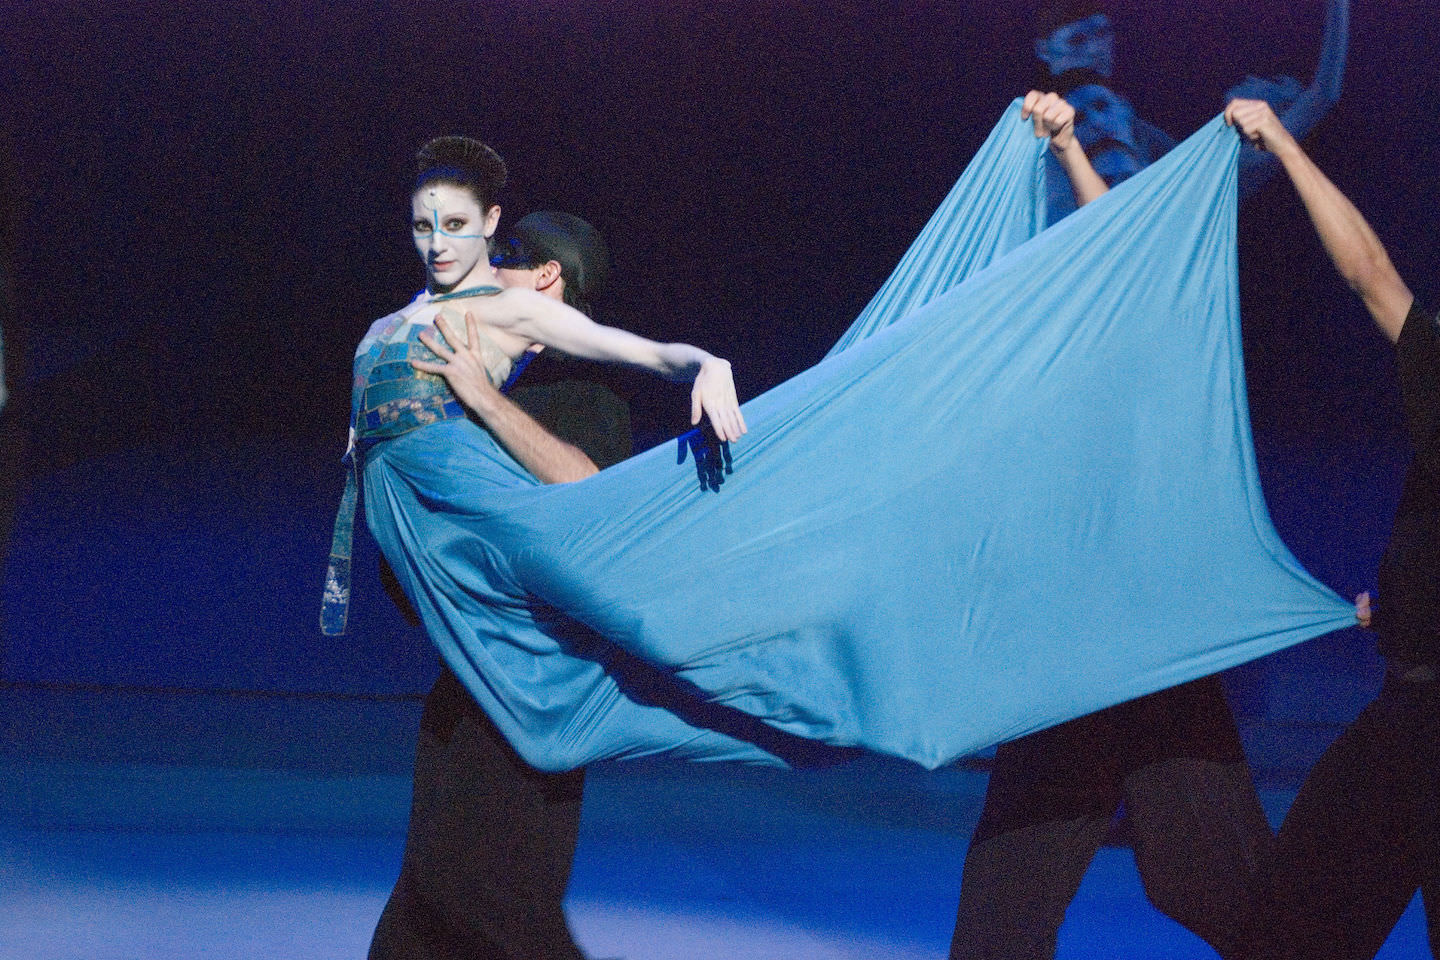 The LIttle Mermaid by the Humberg Ballet in 2009